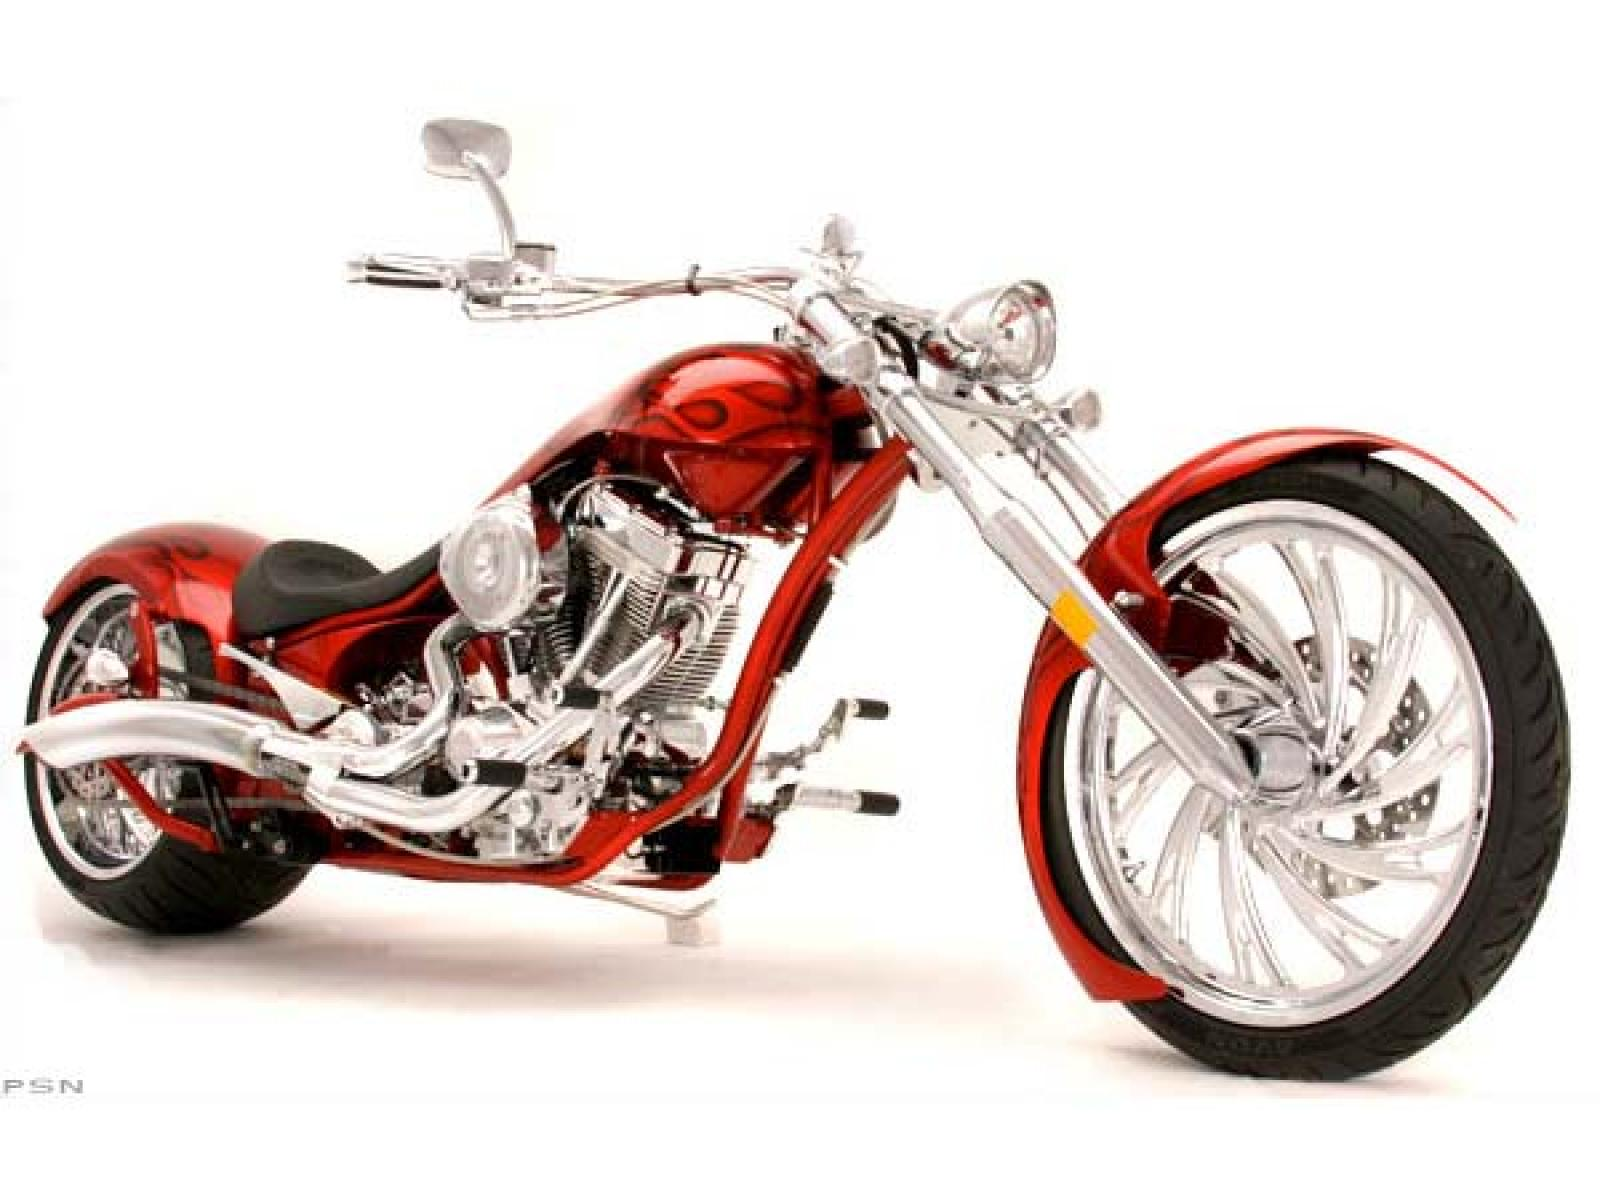 Big Bear Choppers Paradox 114 EFI X-Wedge images #63477